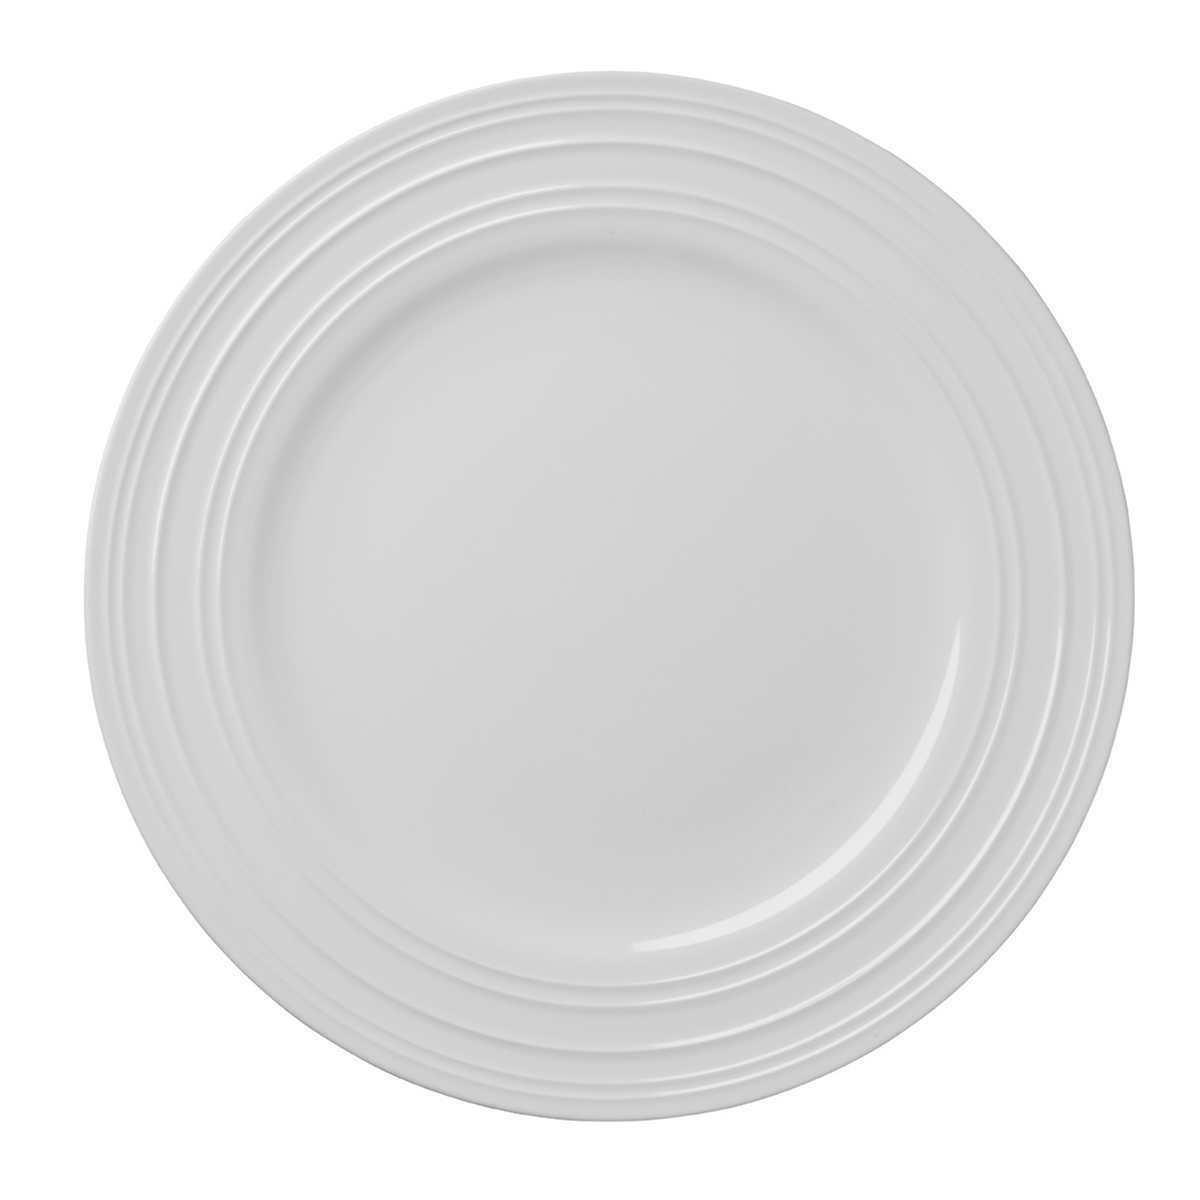 Mikasa Dinnerware Services for 6 Bowls